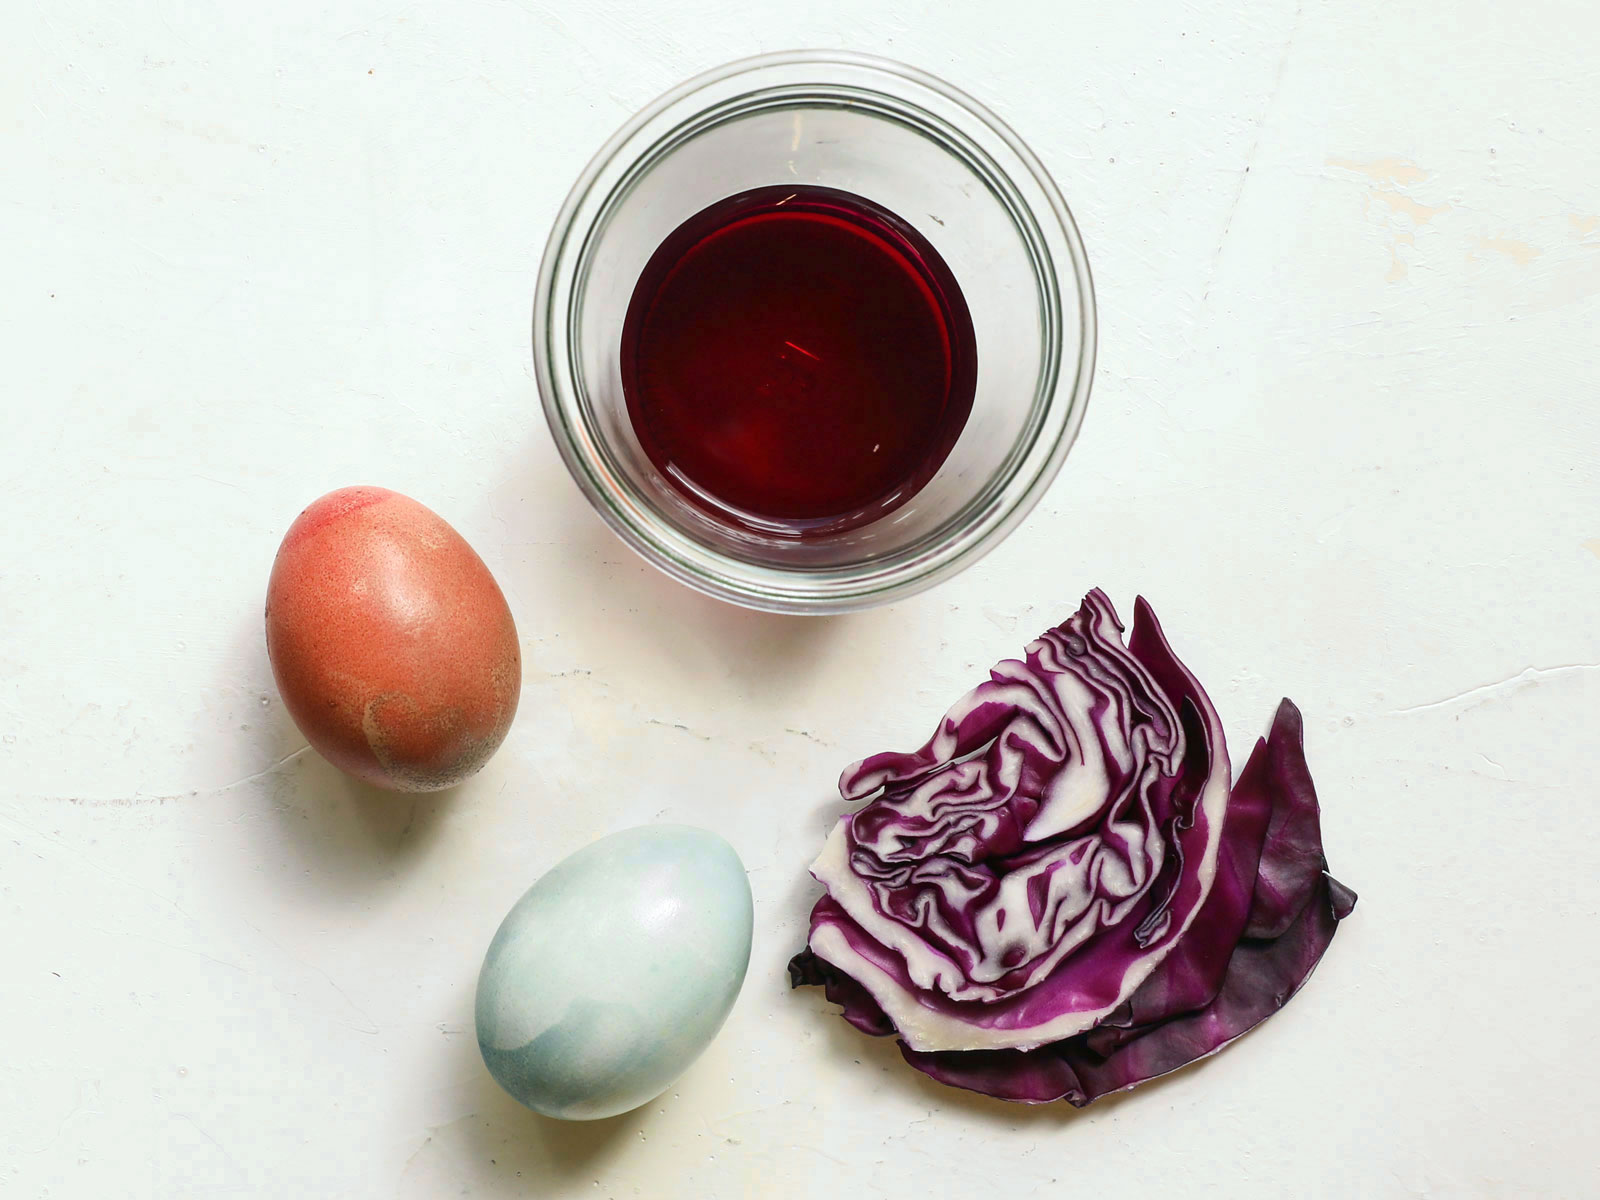 Cabbage Easter Egg Dye